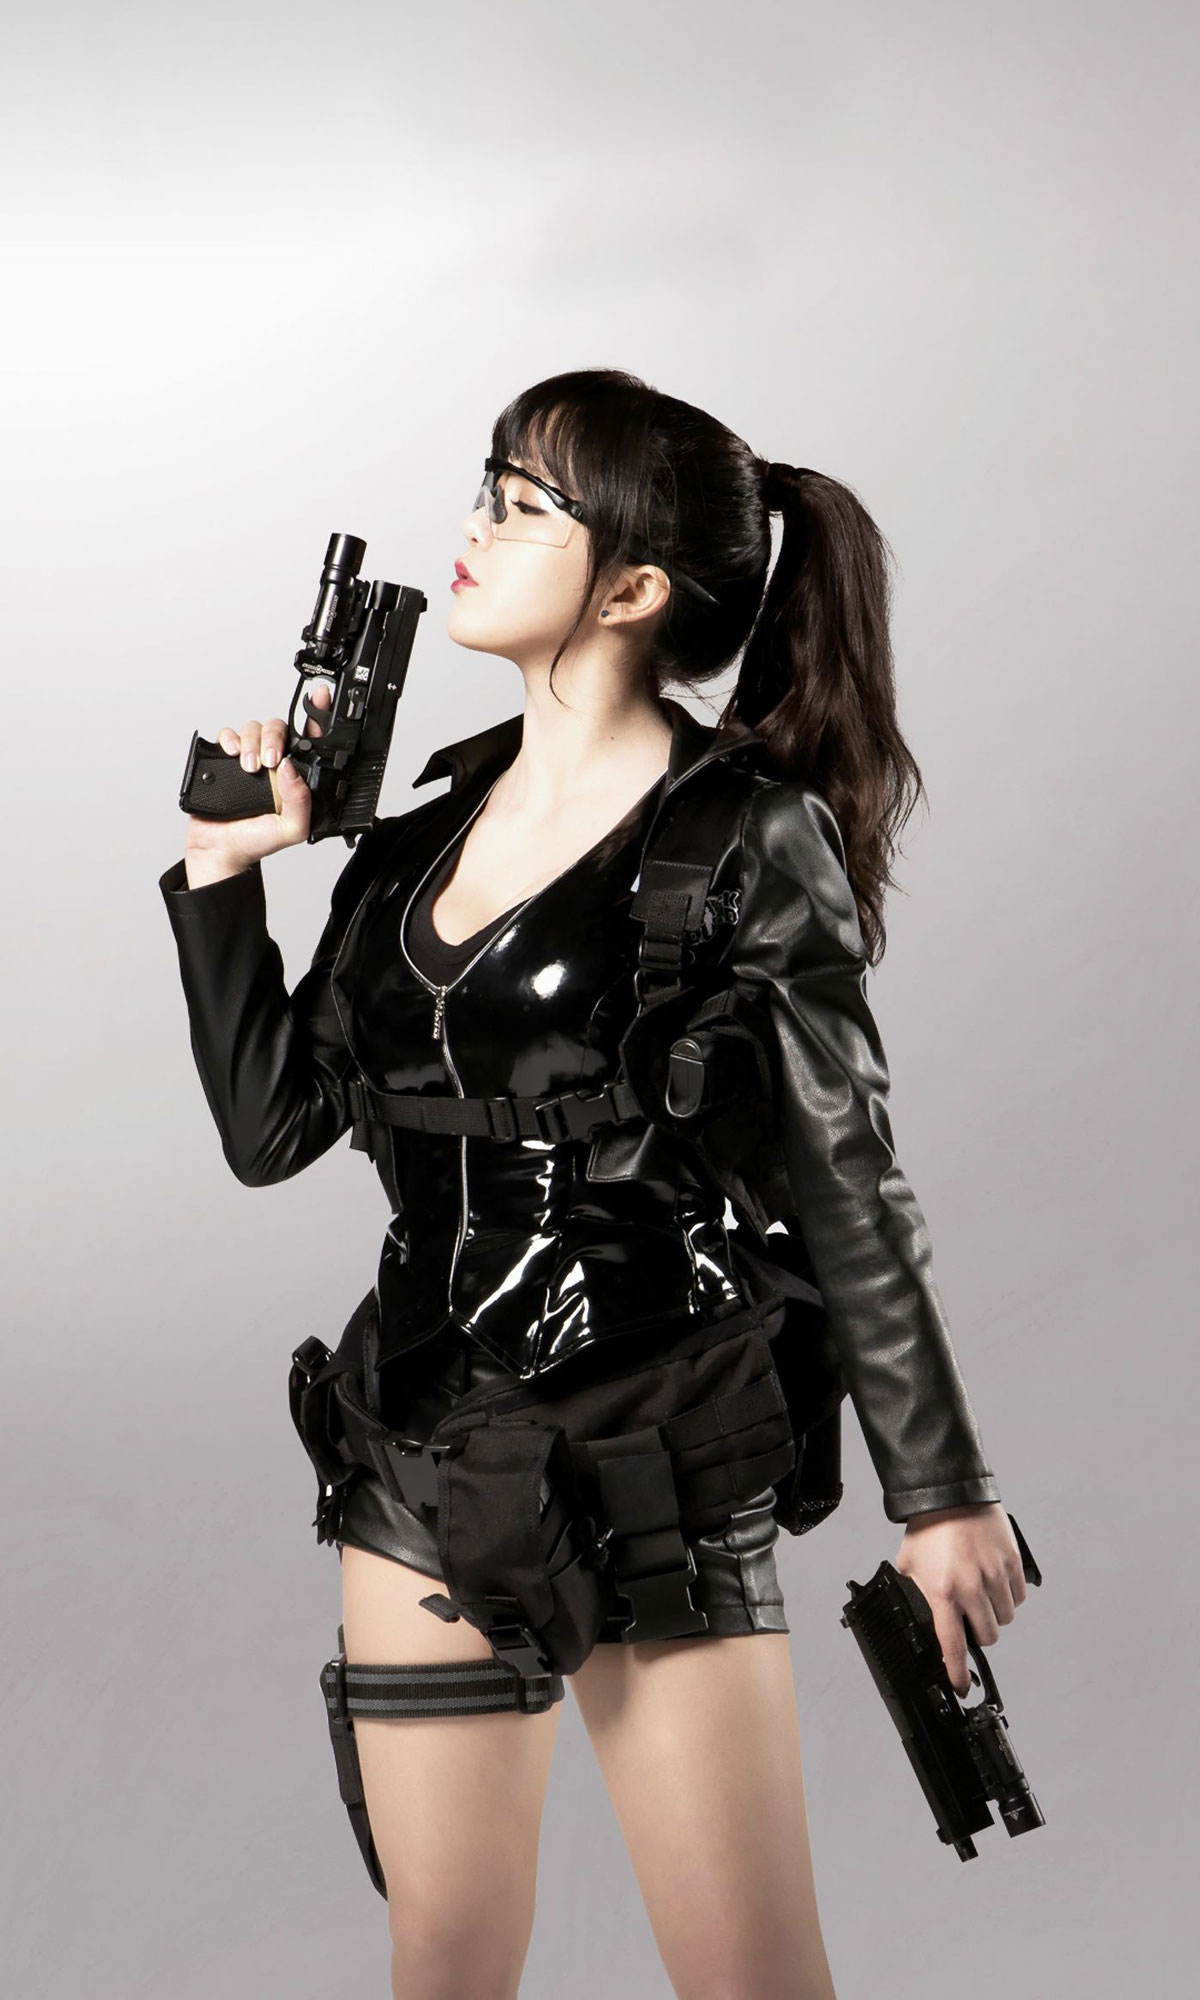 Rainbow Hyunyoung Korean video game